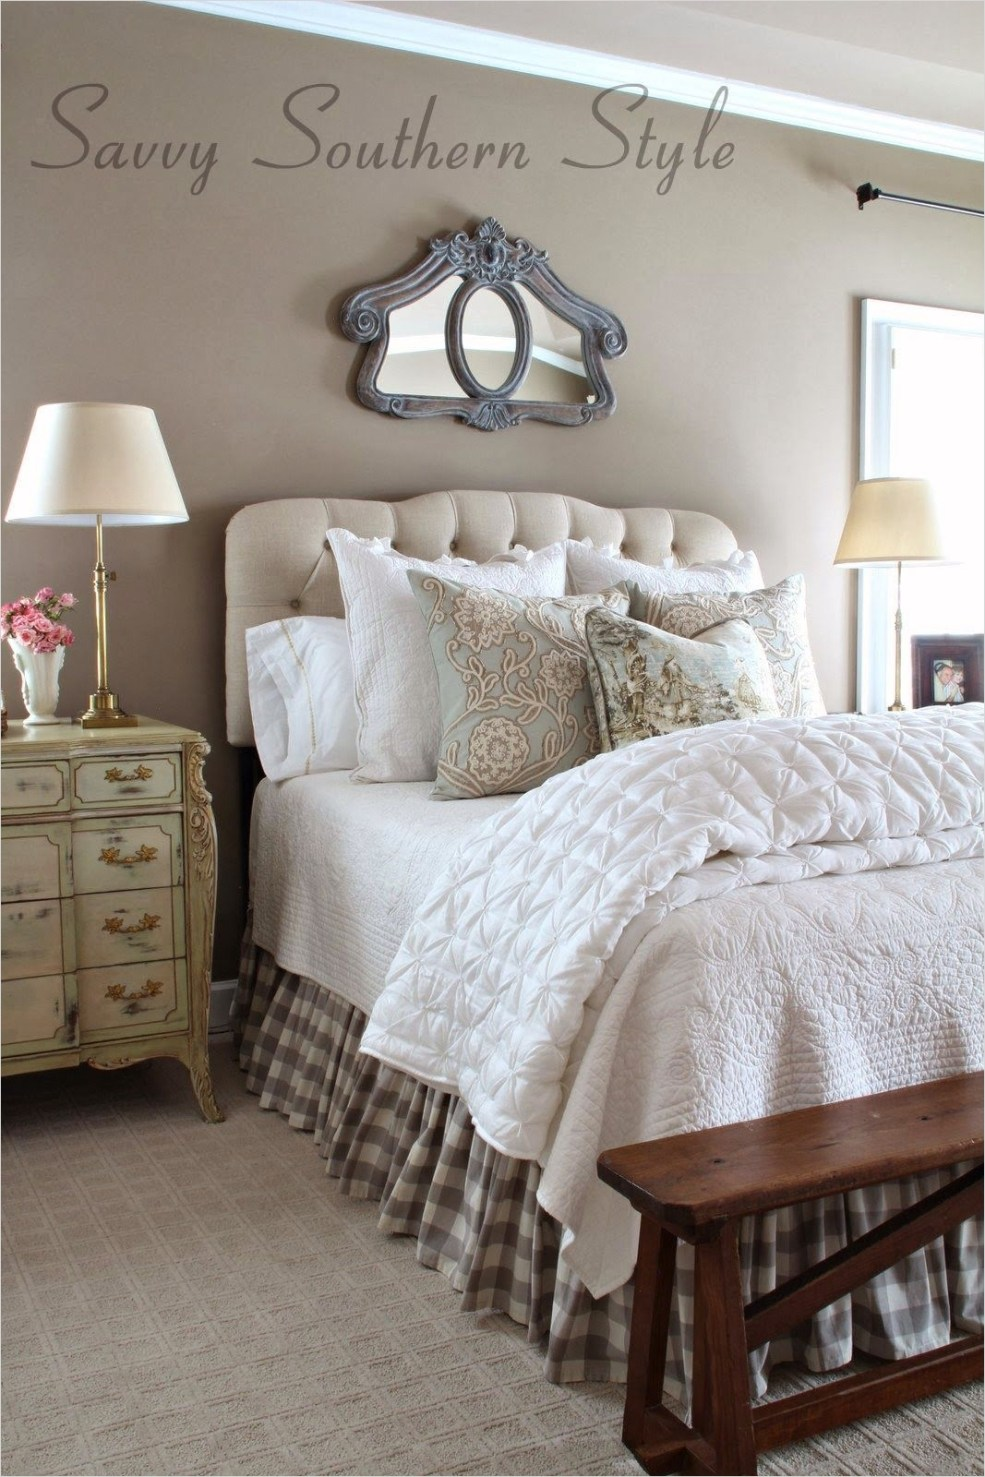 43 Stunning Country Farmhouse Bedroom Ideas 12 Savvy southern Style Adding French Farmhouse Style In the Master 7